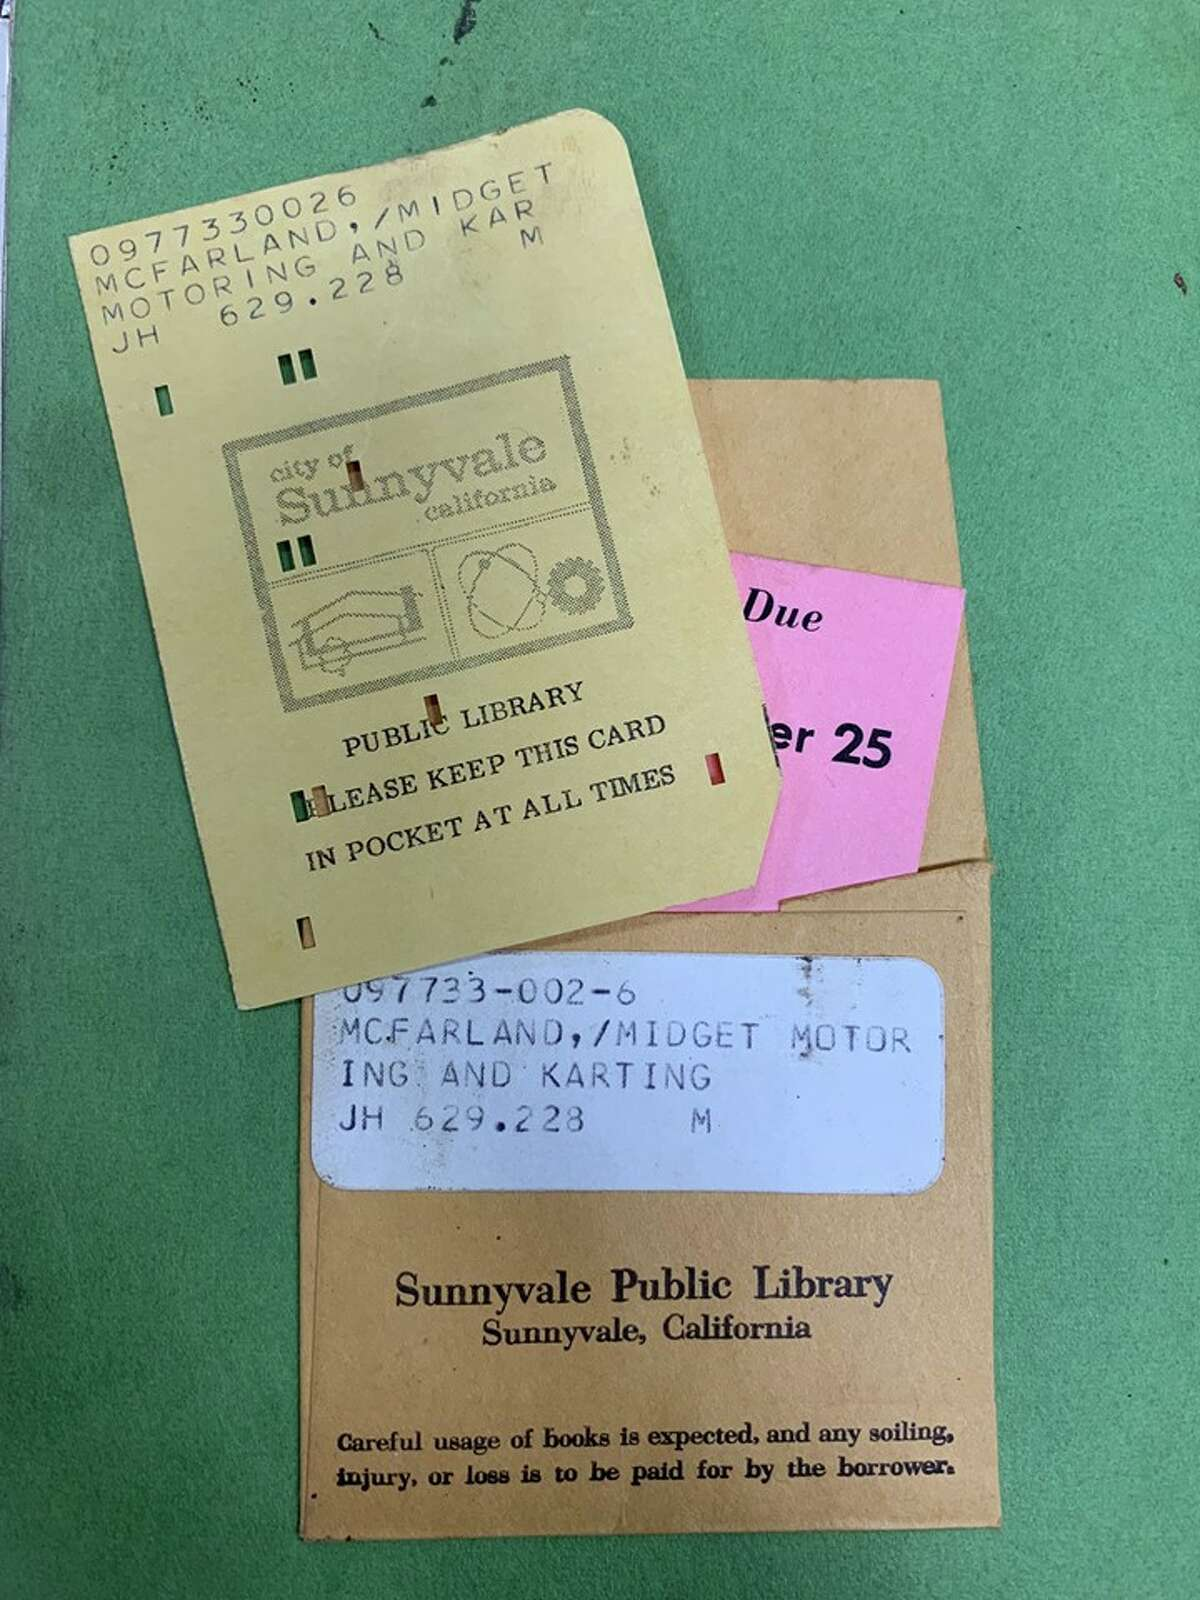 Robert Somaduroff returned an overdue book to the Sunnyvale Public Library last week, 45 years after first taking it out.